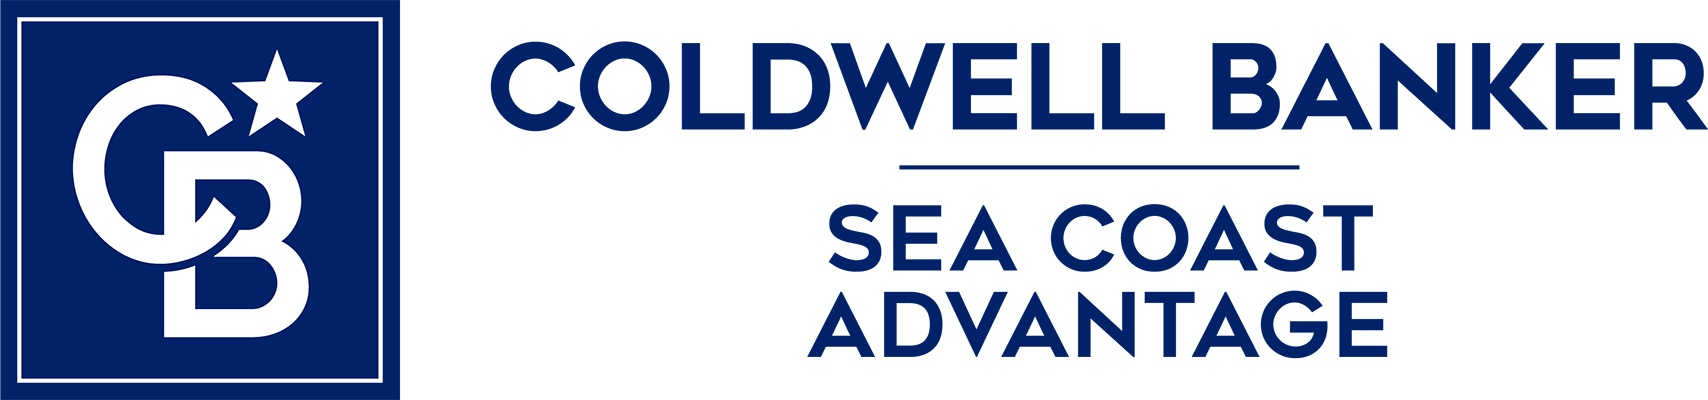 Chris Lopata - Coldwell Banker Sea Coast Advantage Realty Logo